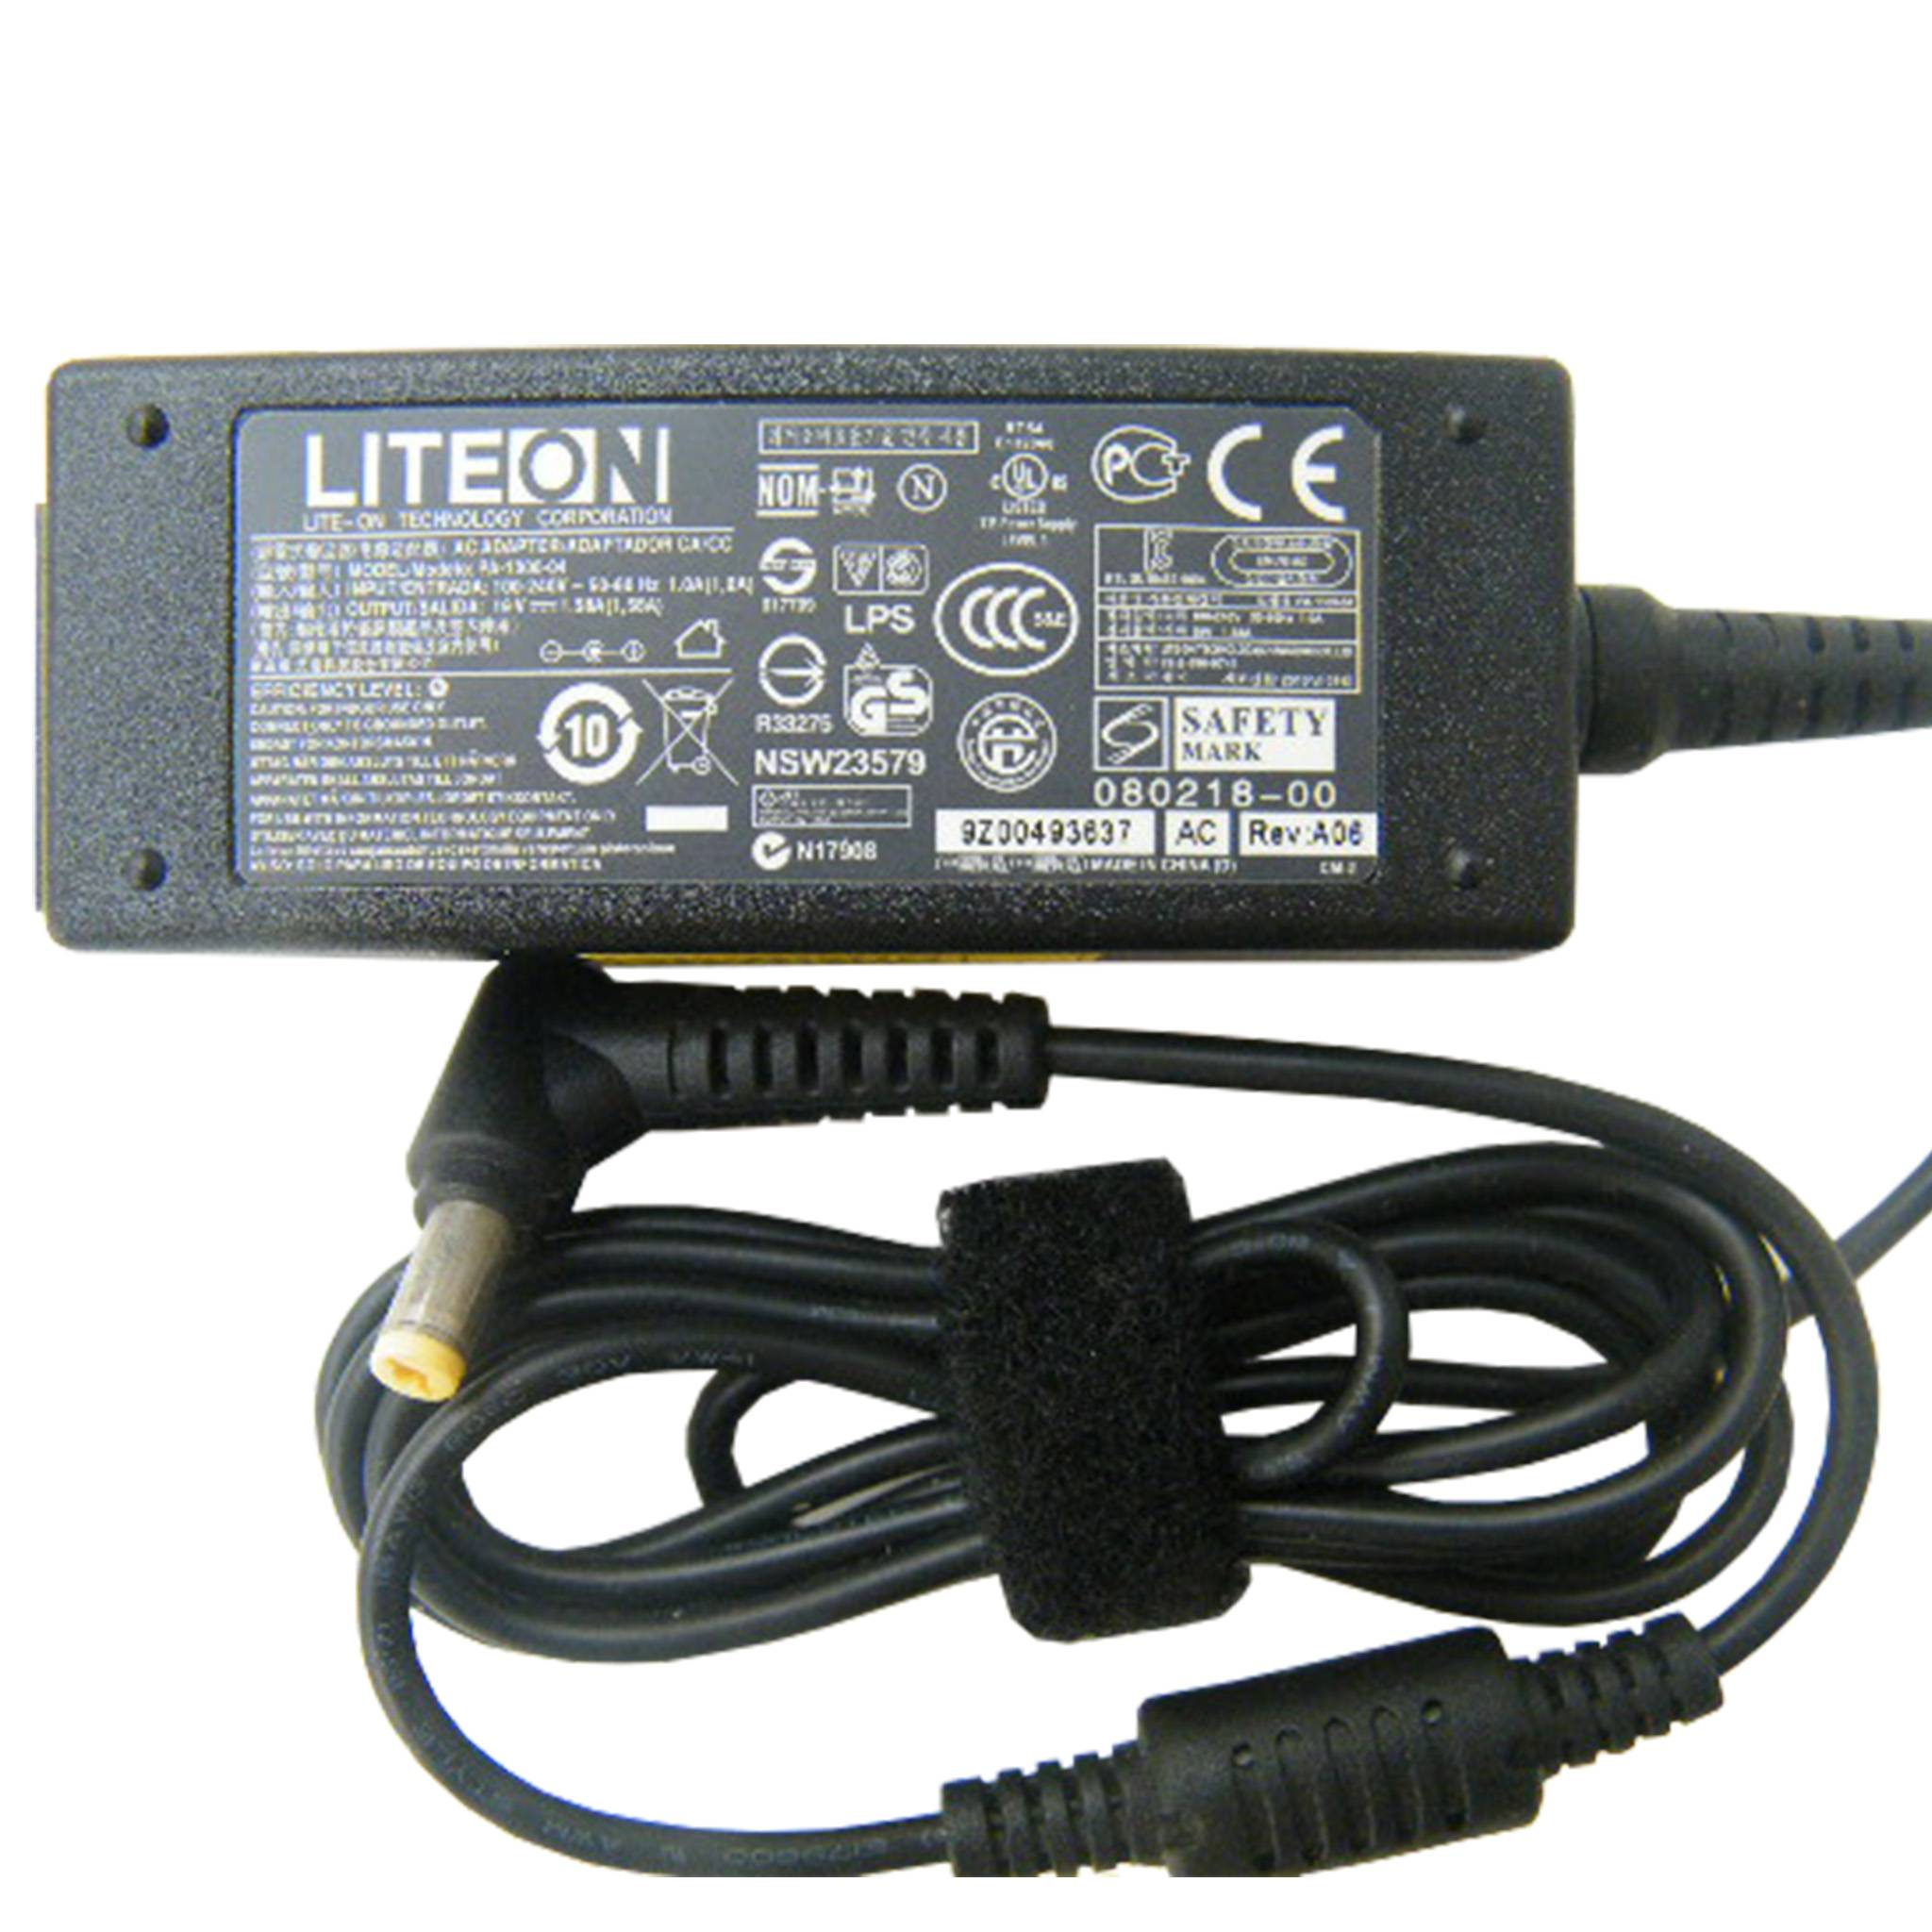 Liteon 19V 1.58A 30W Original AC Adapter for Acer Aspire One